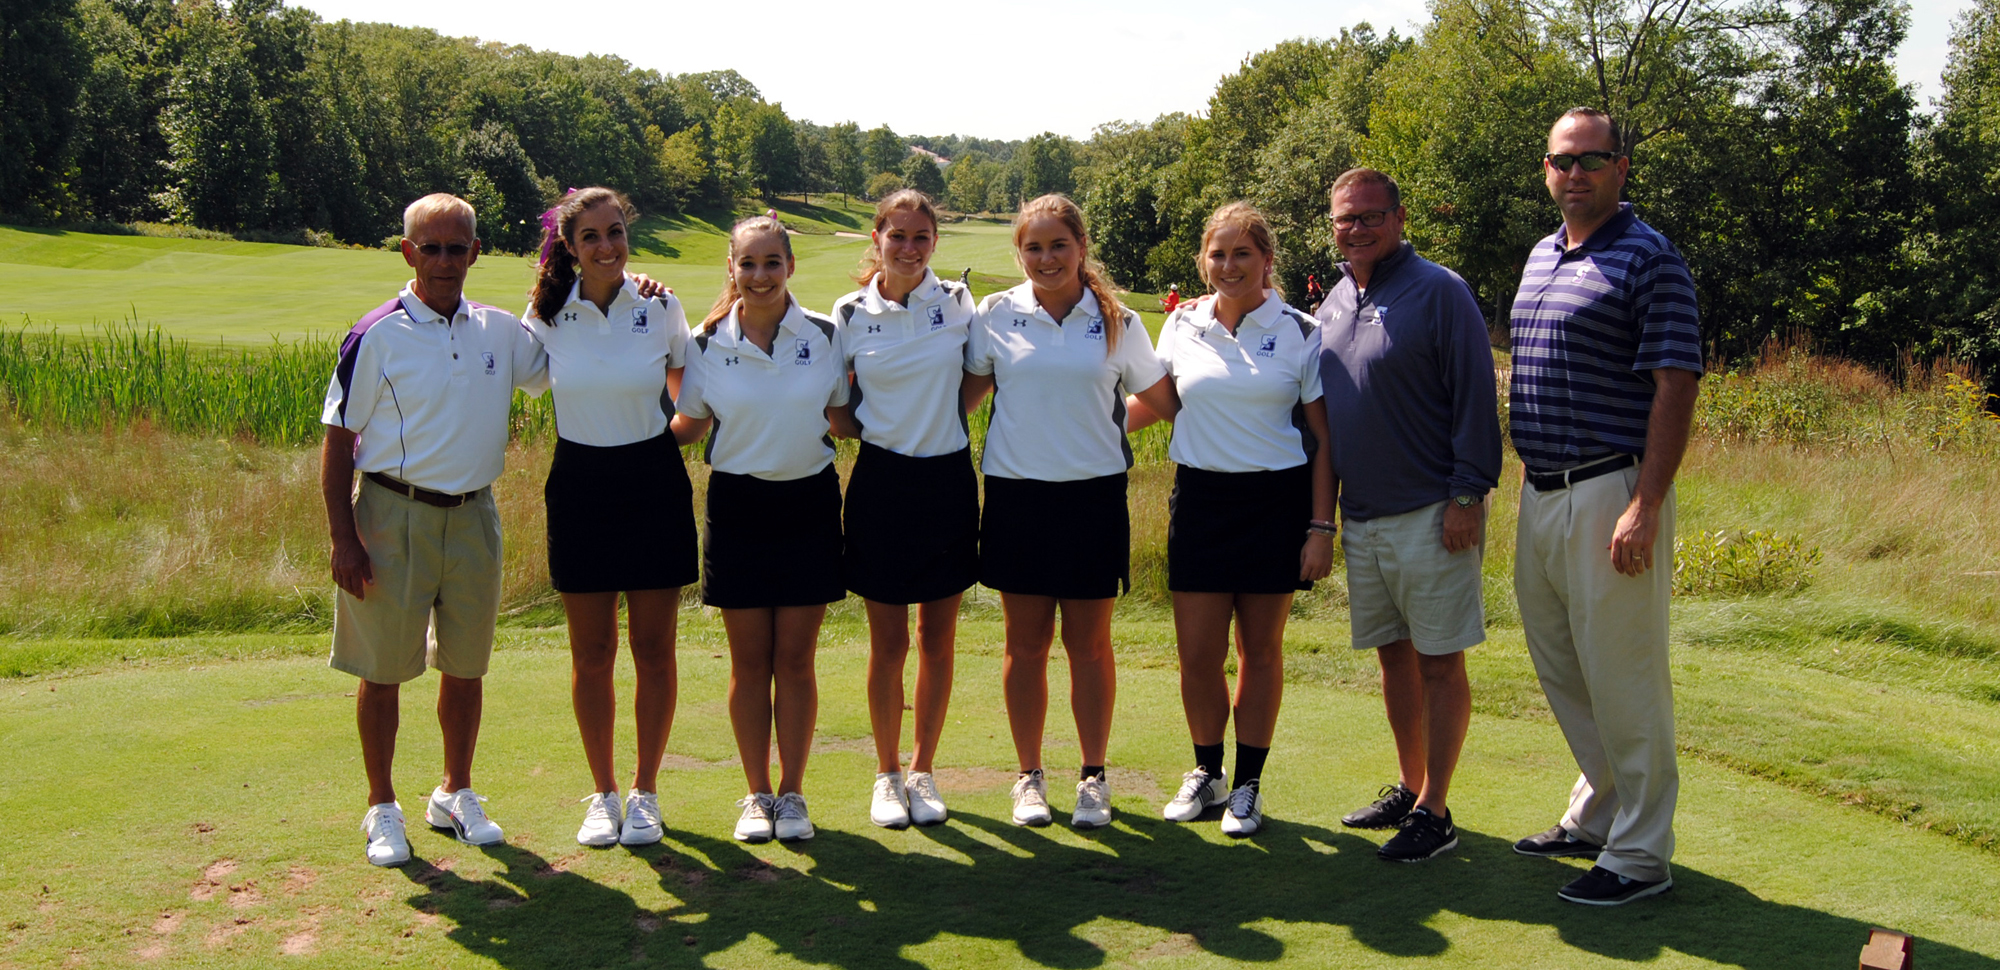 The first women's golf match in University of Scranton history was played on Tuesday. Pictured, from left, are head coach Ed Karpovich, Katie Allen, Brianna Stein, Julie Cranney, Maggie McDonough, Maura McDonough, director of athletics Dave Martin, and assistant coach Trevor Woodruff.